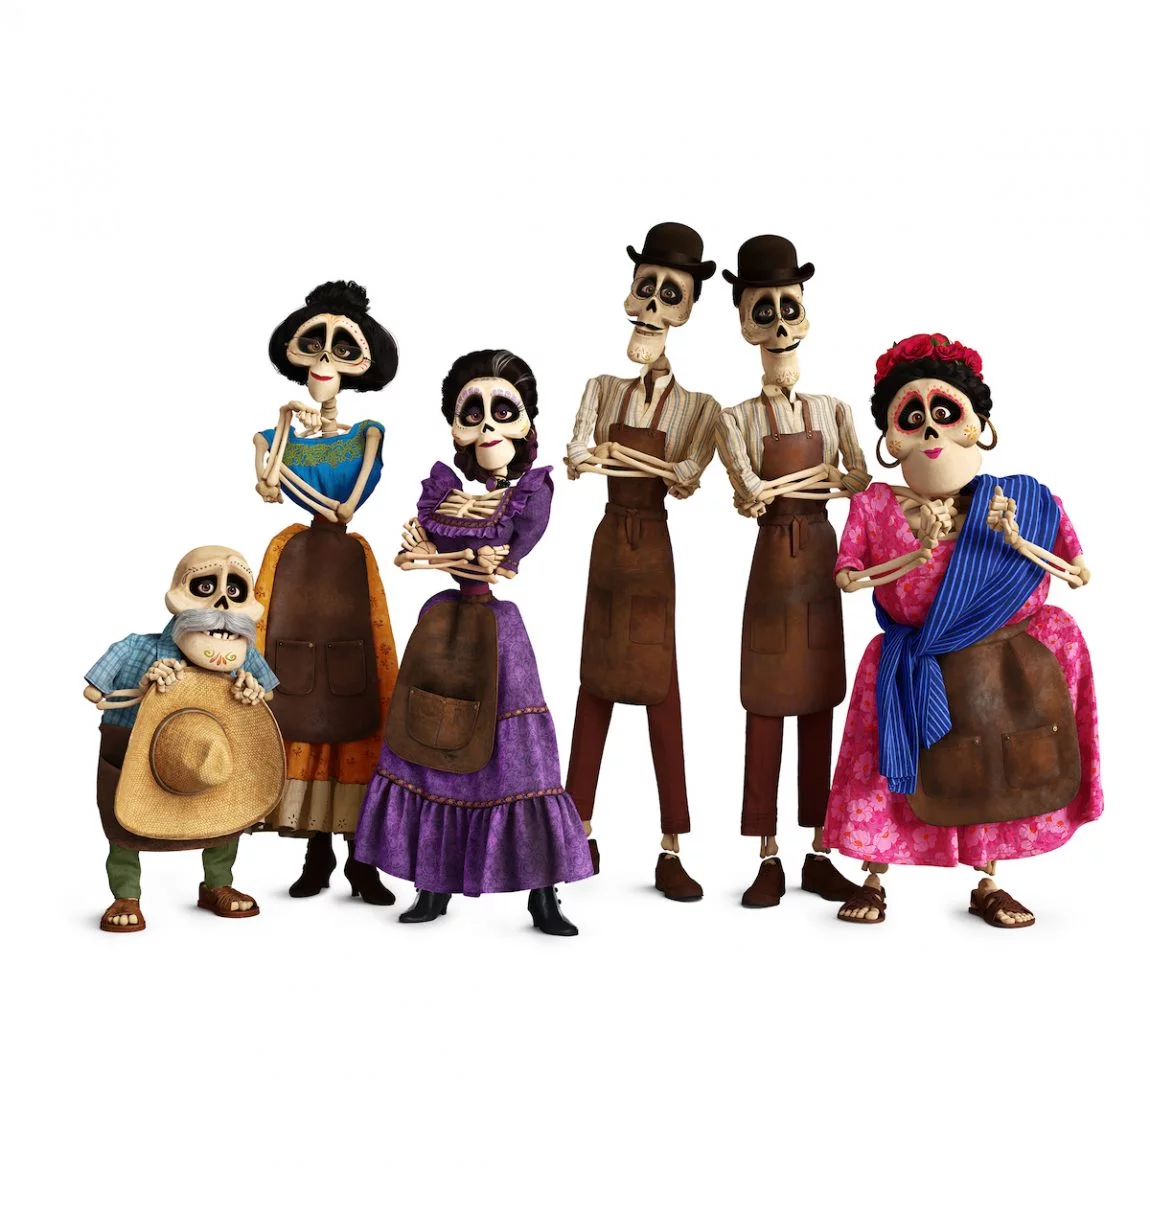 image coco skeleton family png disney wiki fandom christmas scrooge clipart scrooge mcduck clipart